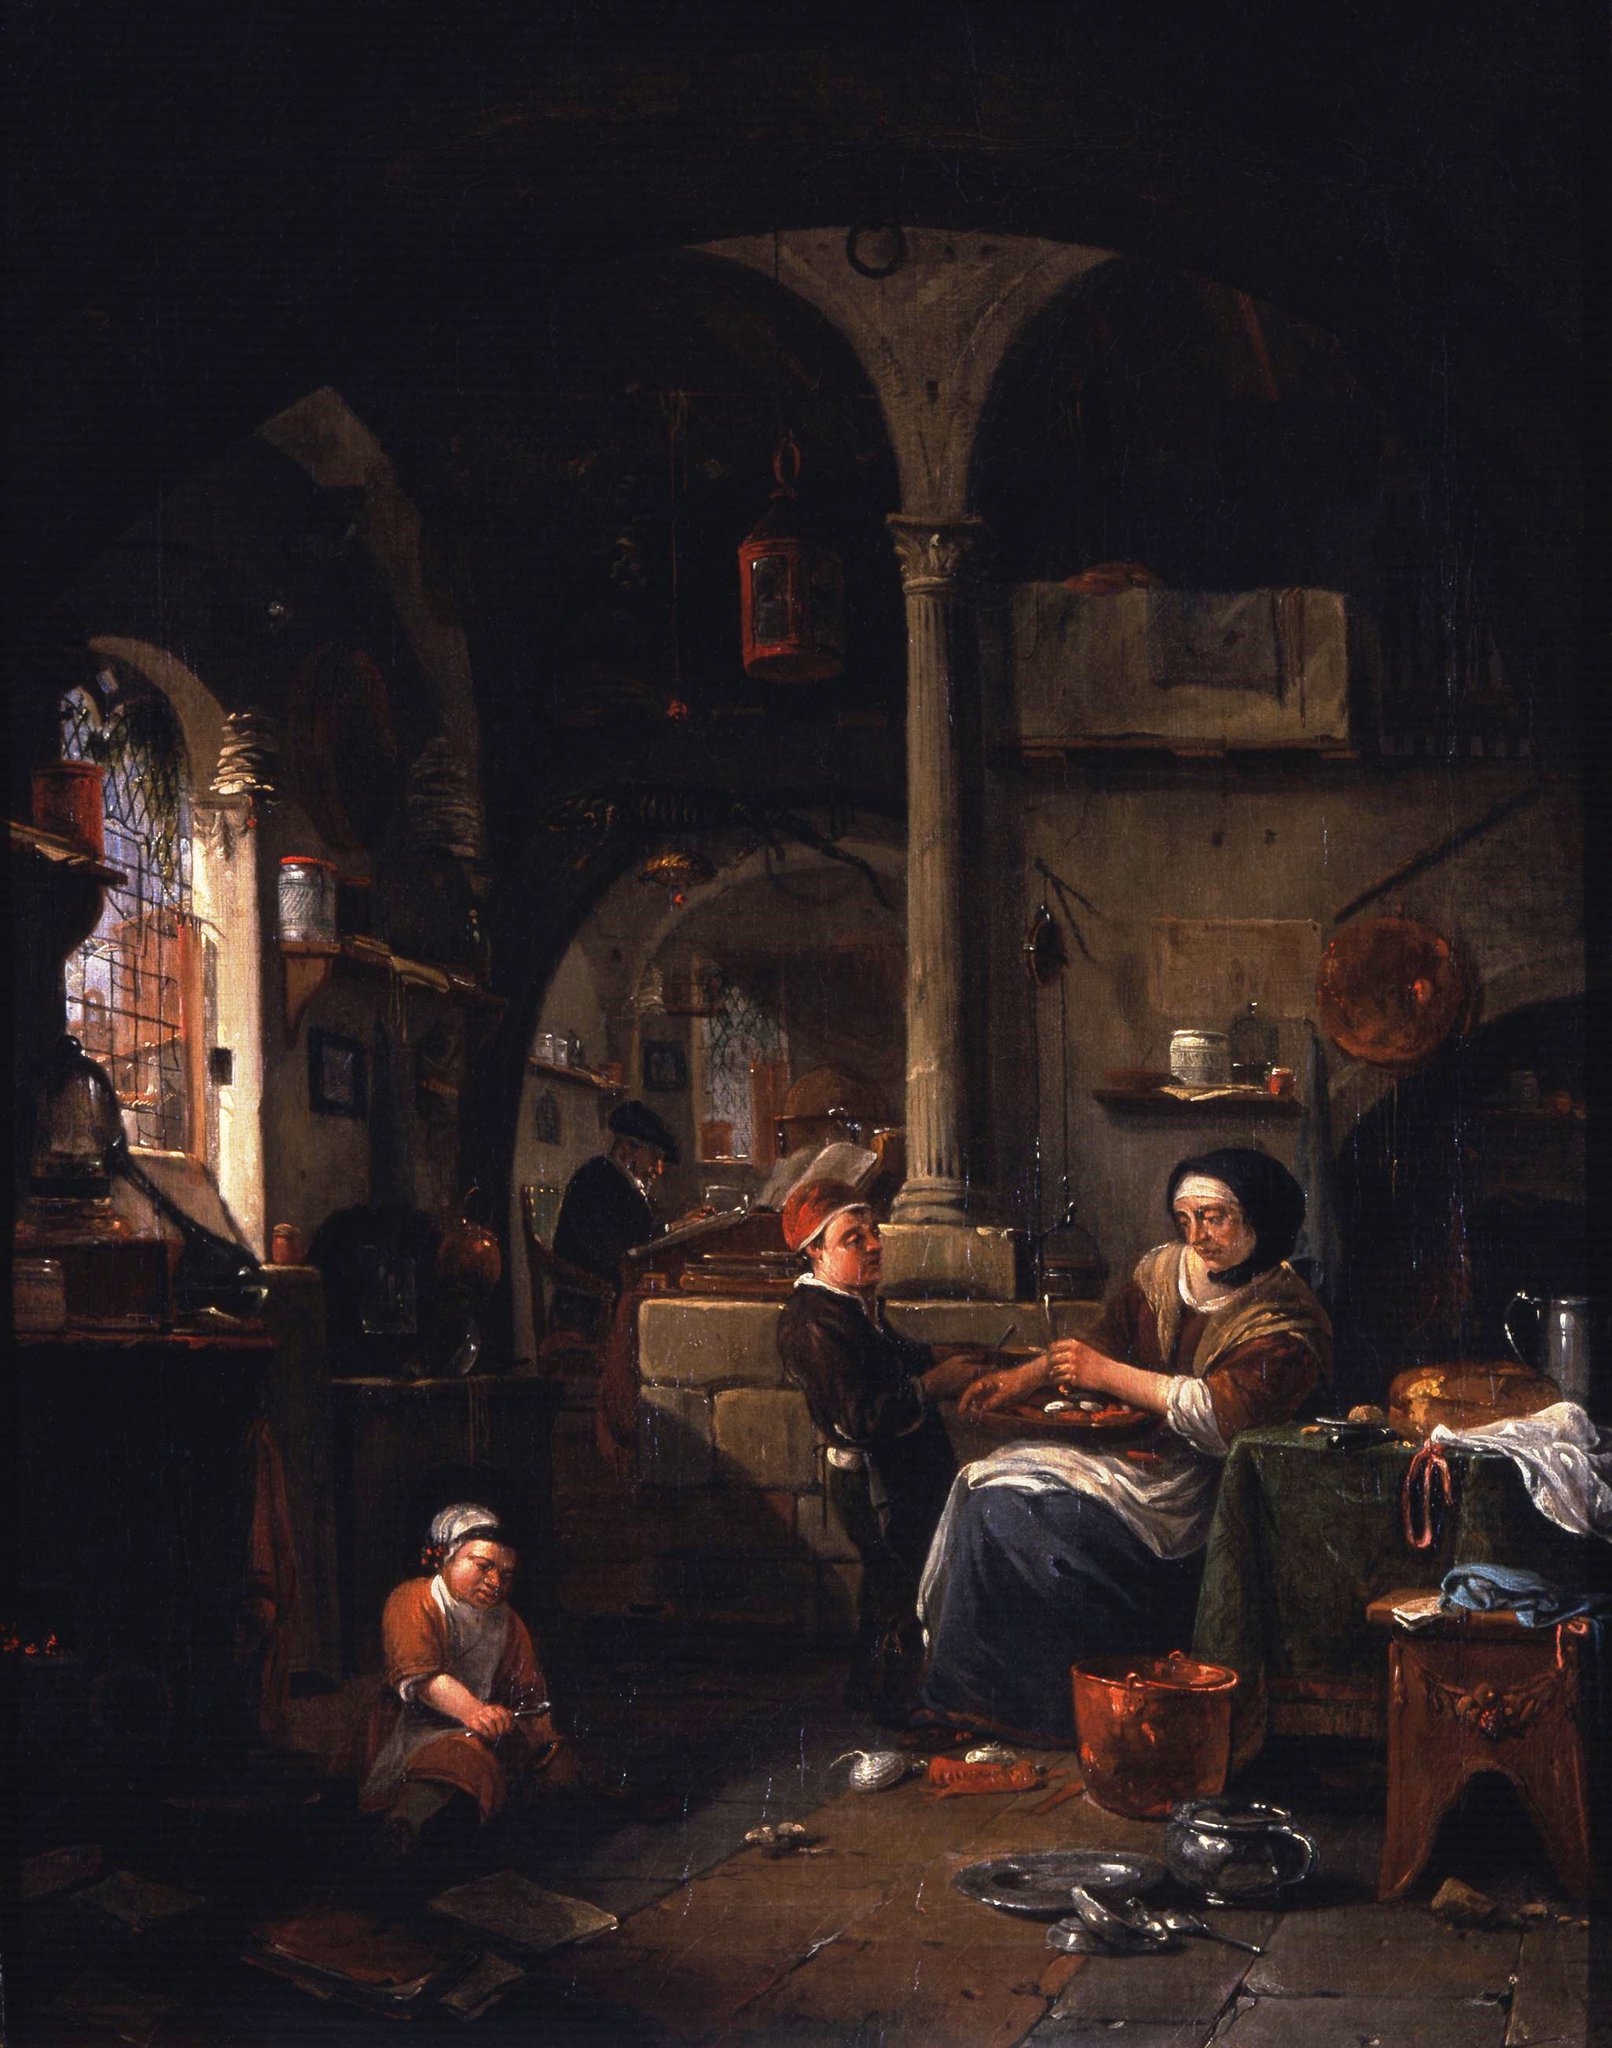 In positive portrayals of alchemists, women are active partners in bustling hybrid home/workshop spaces #MuseumMonday #WomensHistoryMonth https://t.co/fCnFivYvG9